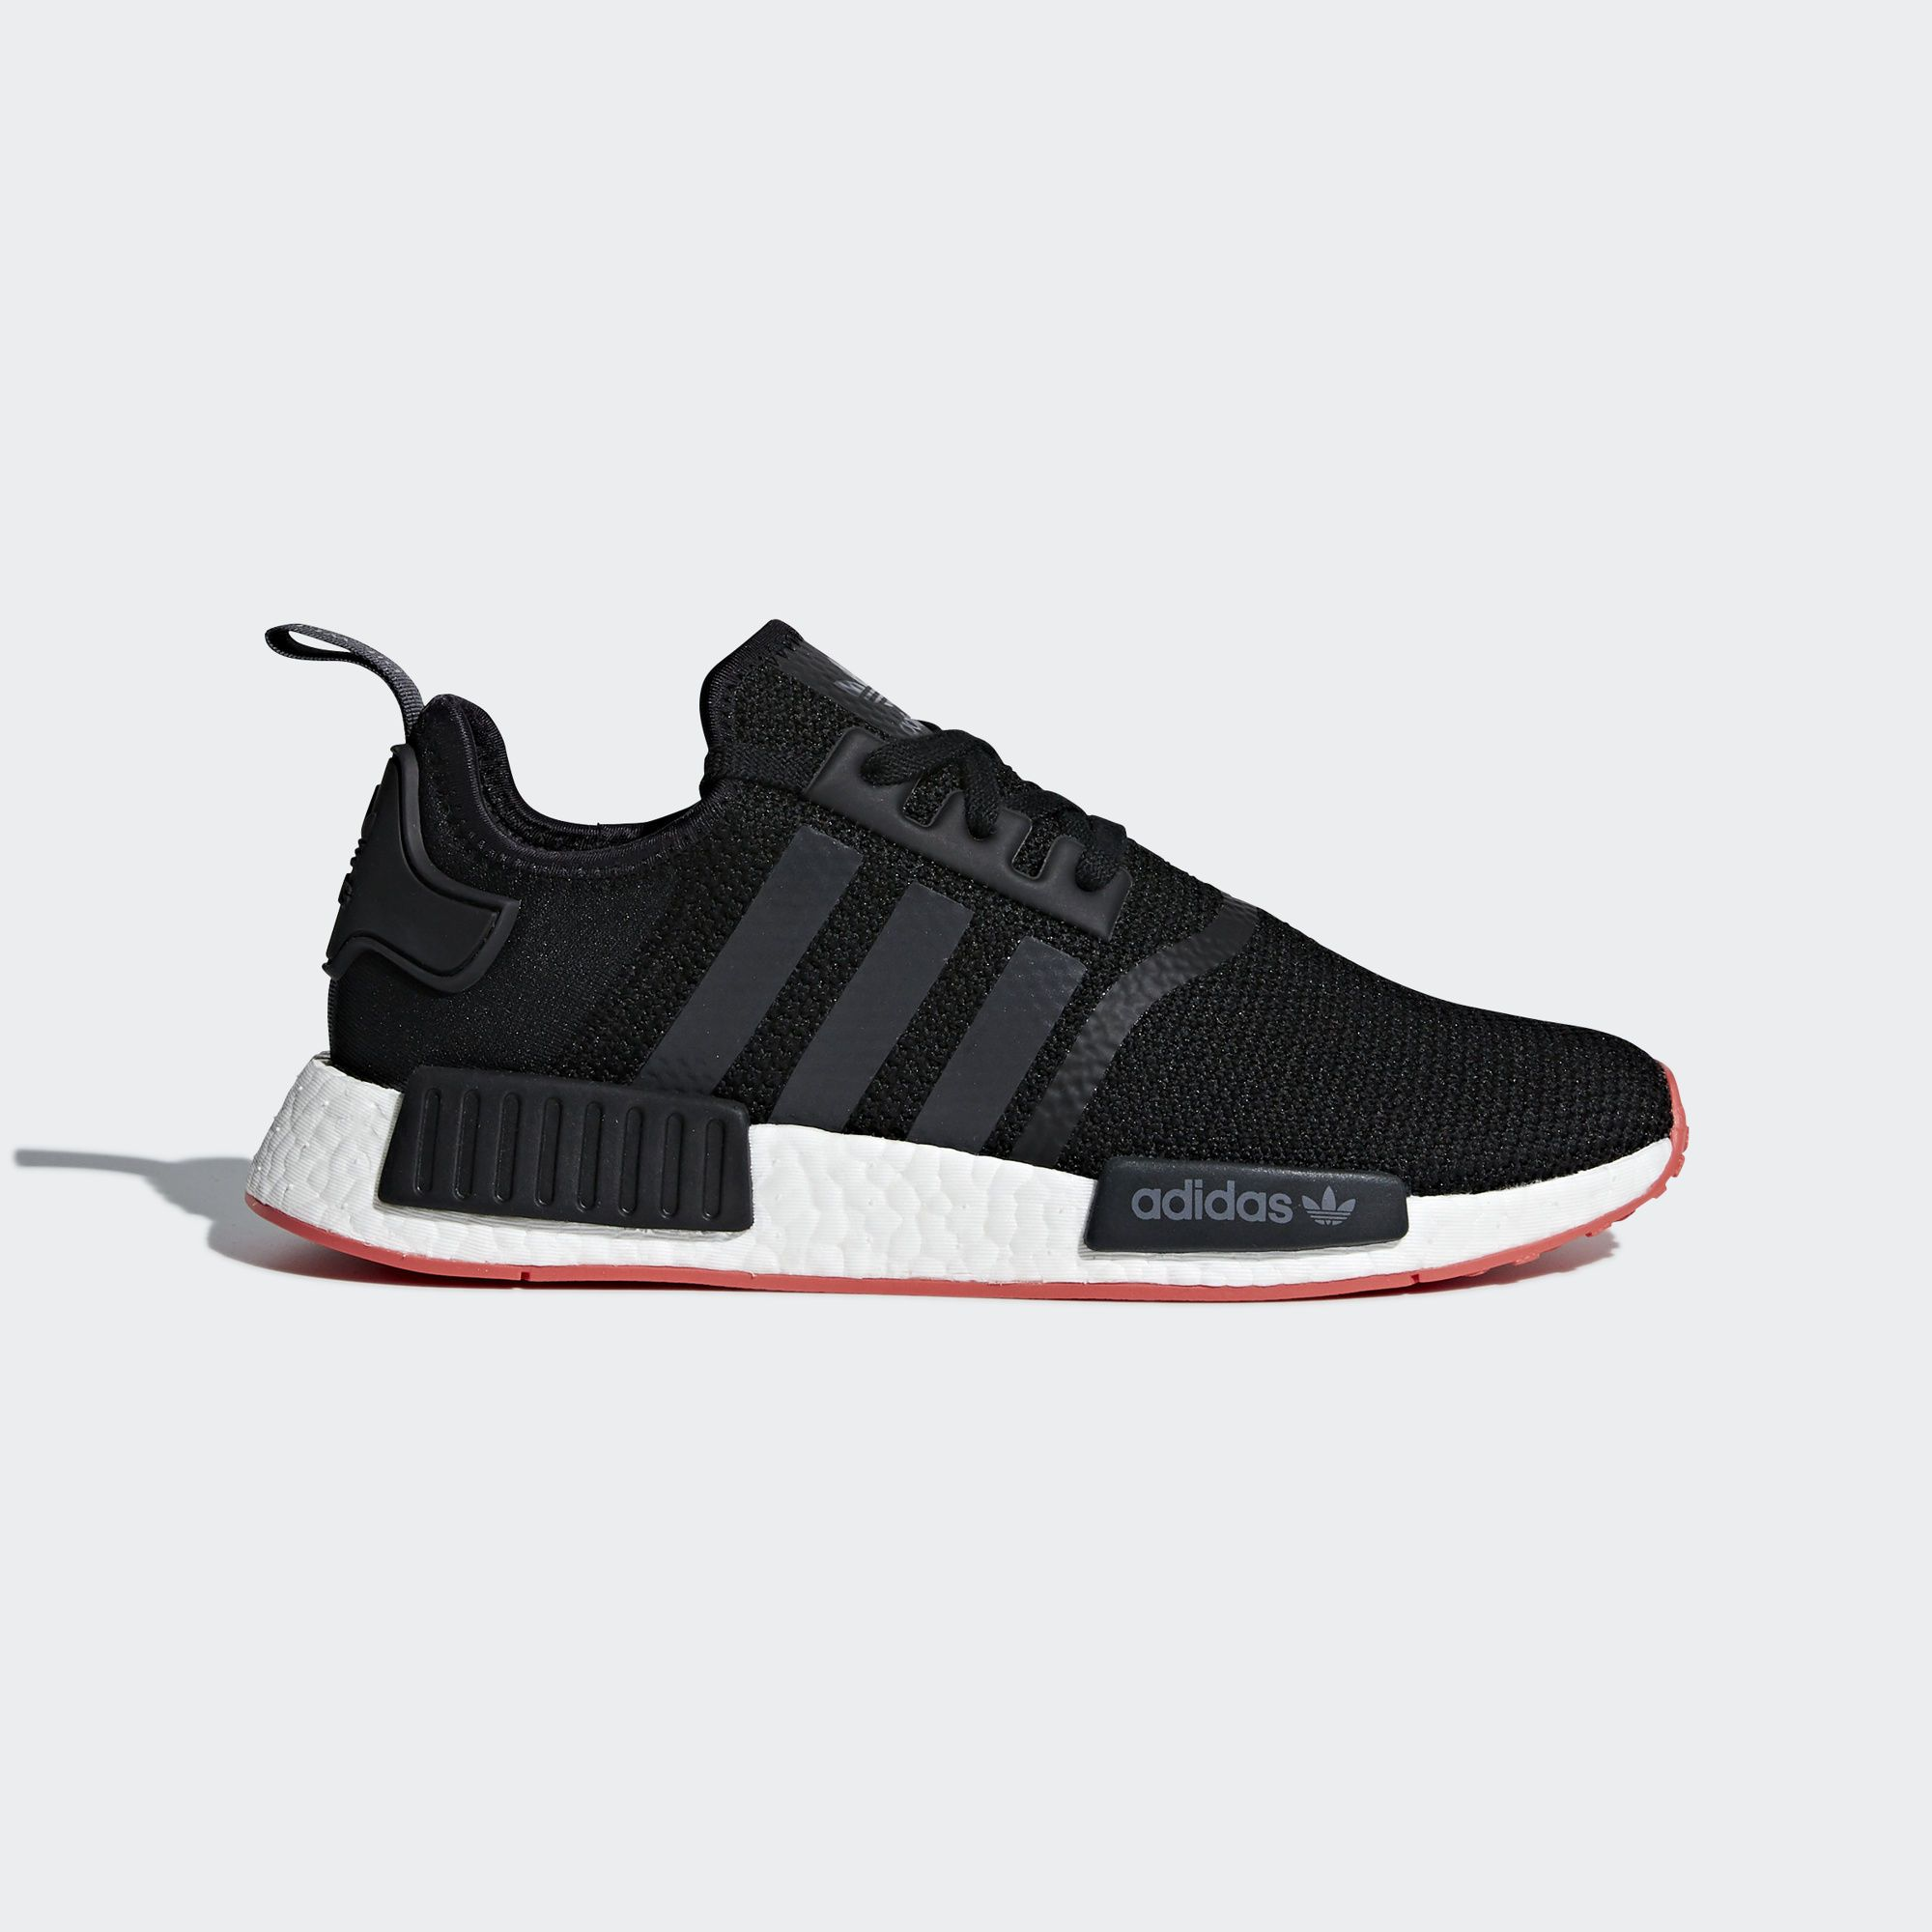 09f4d25e3 adidas NMD R1 Shoes - Grey